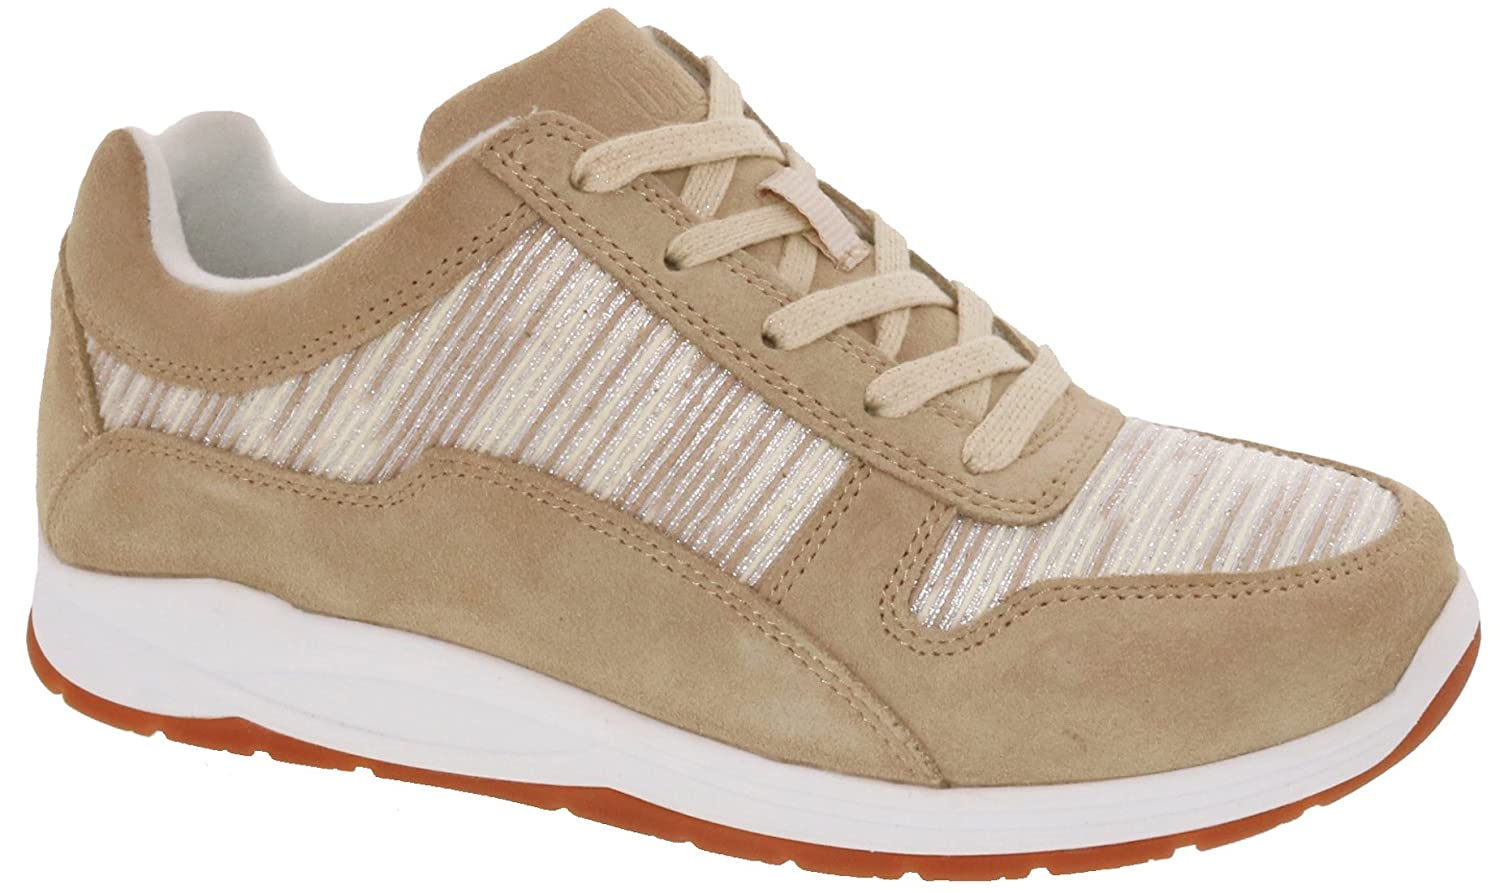 Drew Shoe Tuscany Women's Therapeutic Diabetic Extra Depth Shoe Leather/mesh Lace-up B079YZR831 10.5 2A(N) US|Cream/Combo